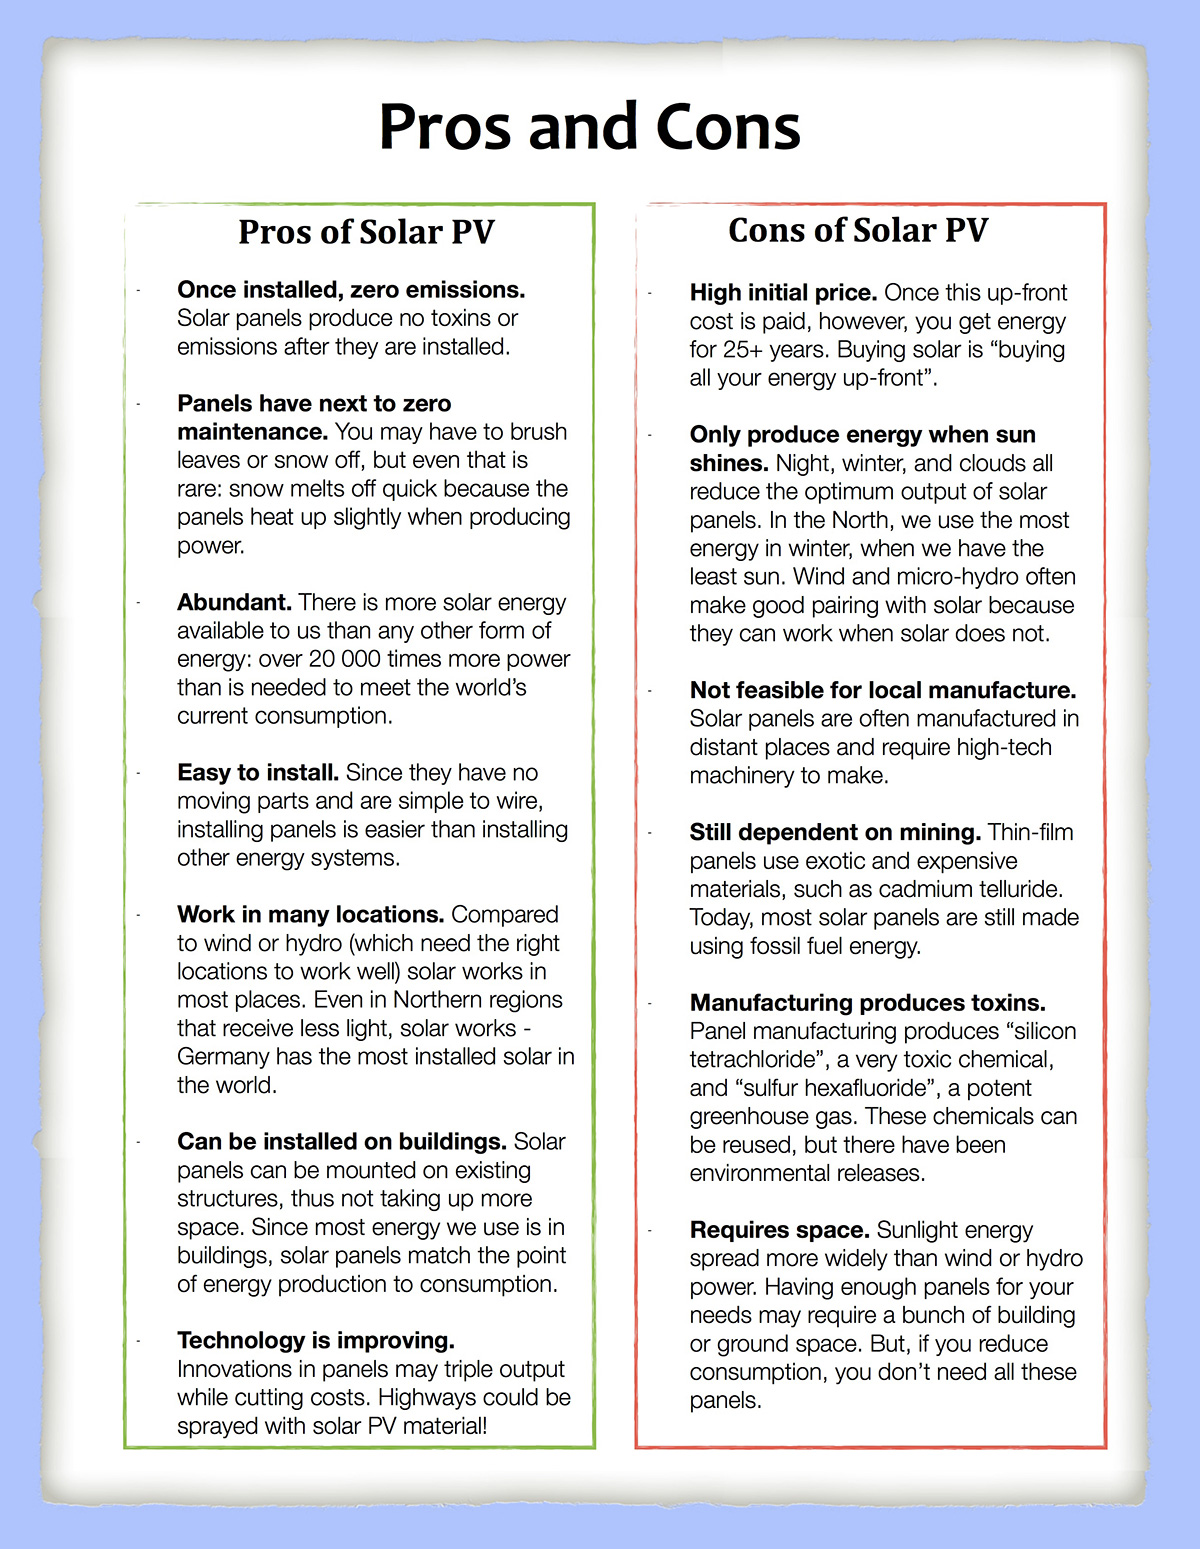 006 Solarposter6 Euthanasia Pros And Cons Essay Magnificent Full